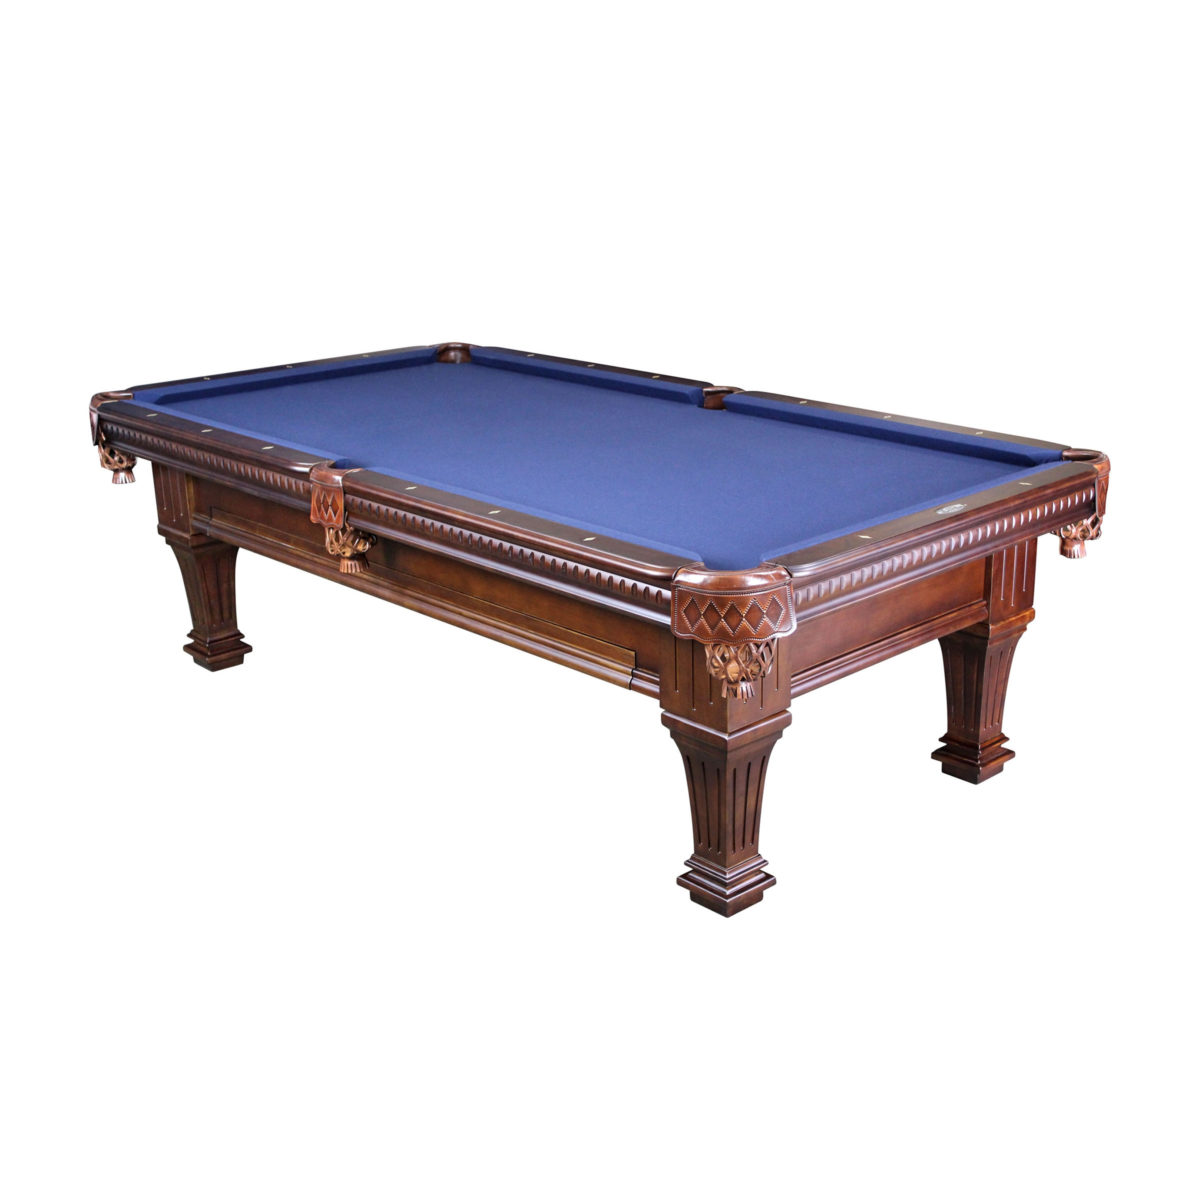 ramsey_pooltable_image_1_1